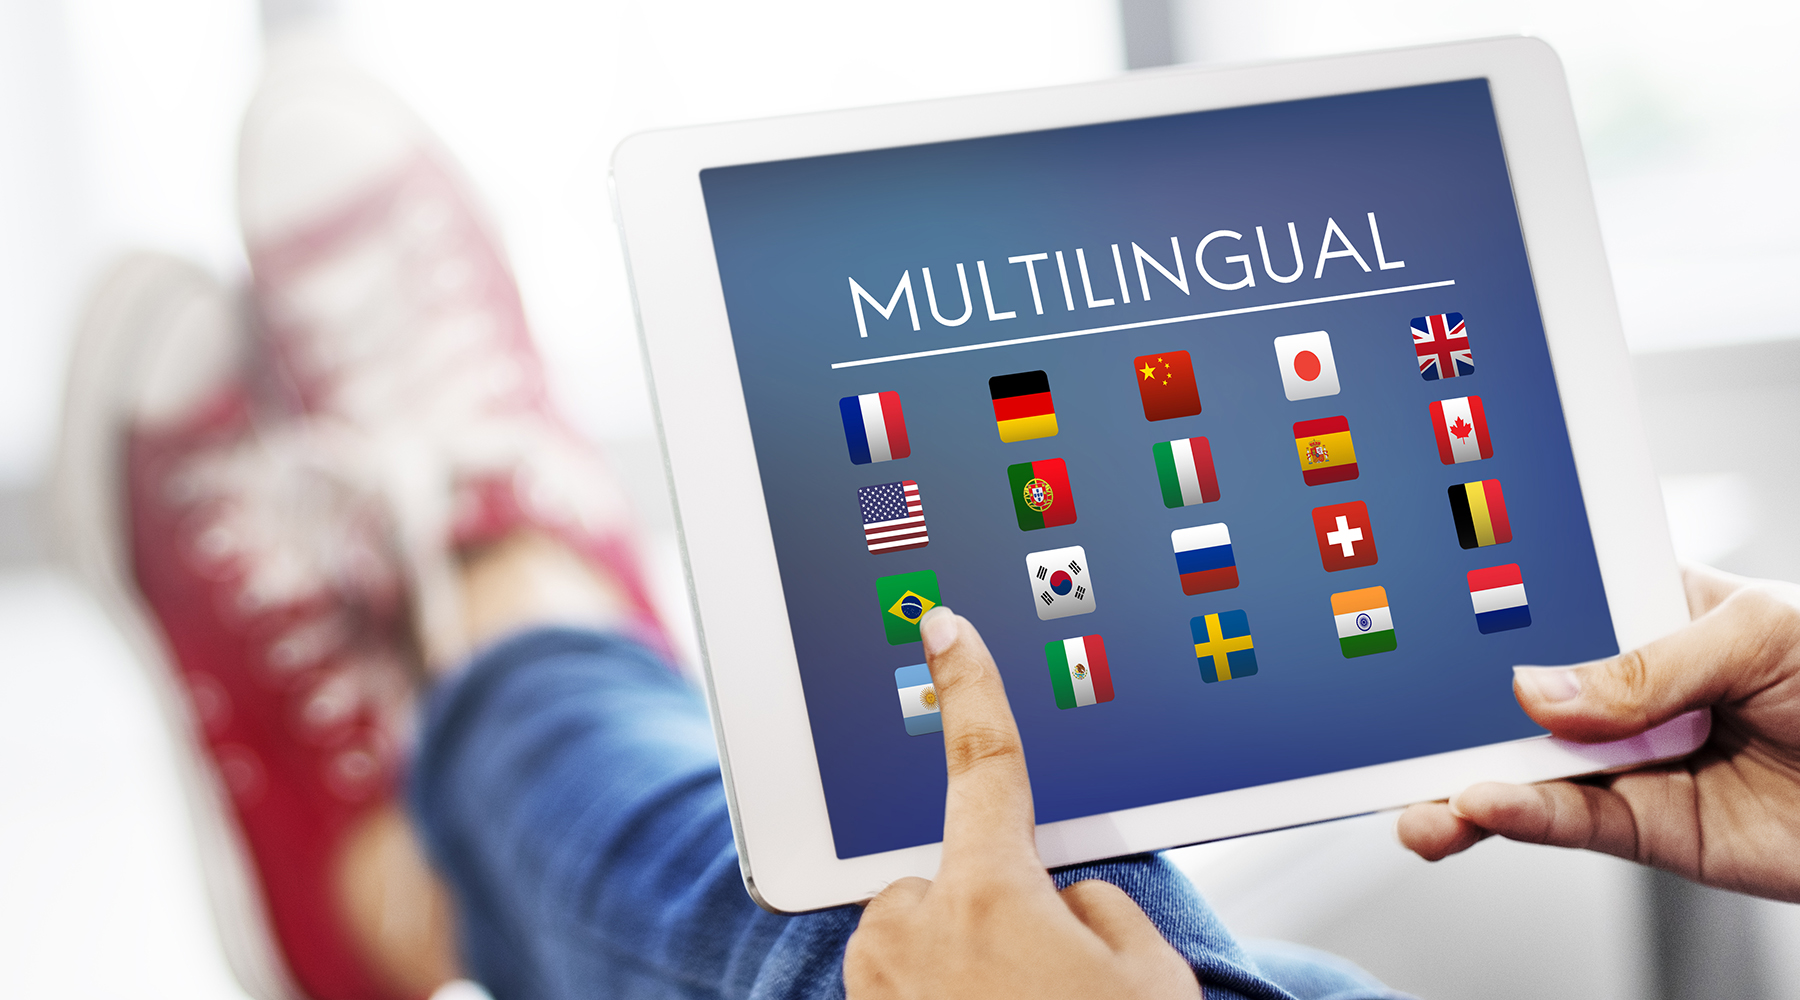 As the world becomes ever smaller, switched on merchants are realising that developing multi-lingual direct to consumer web platforms are a reality, made even easier with the advent of smart shipping providers such as Global E